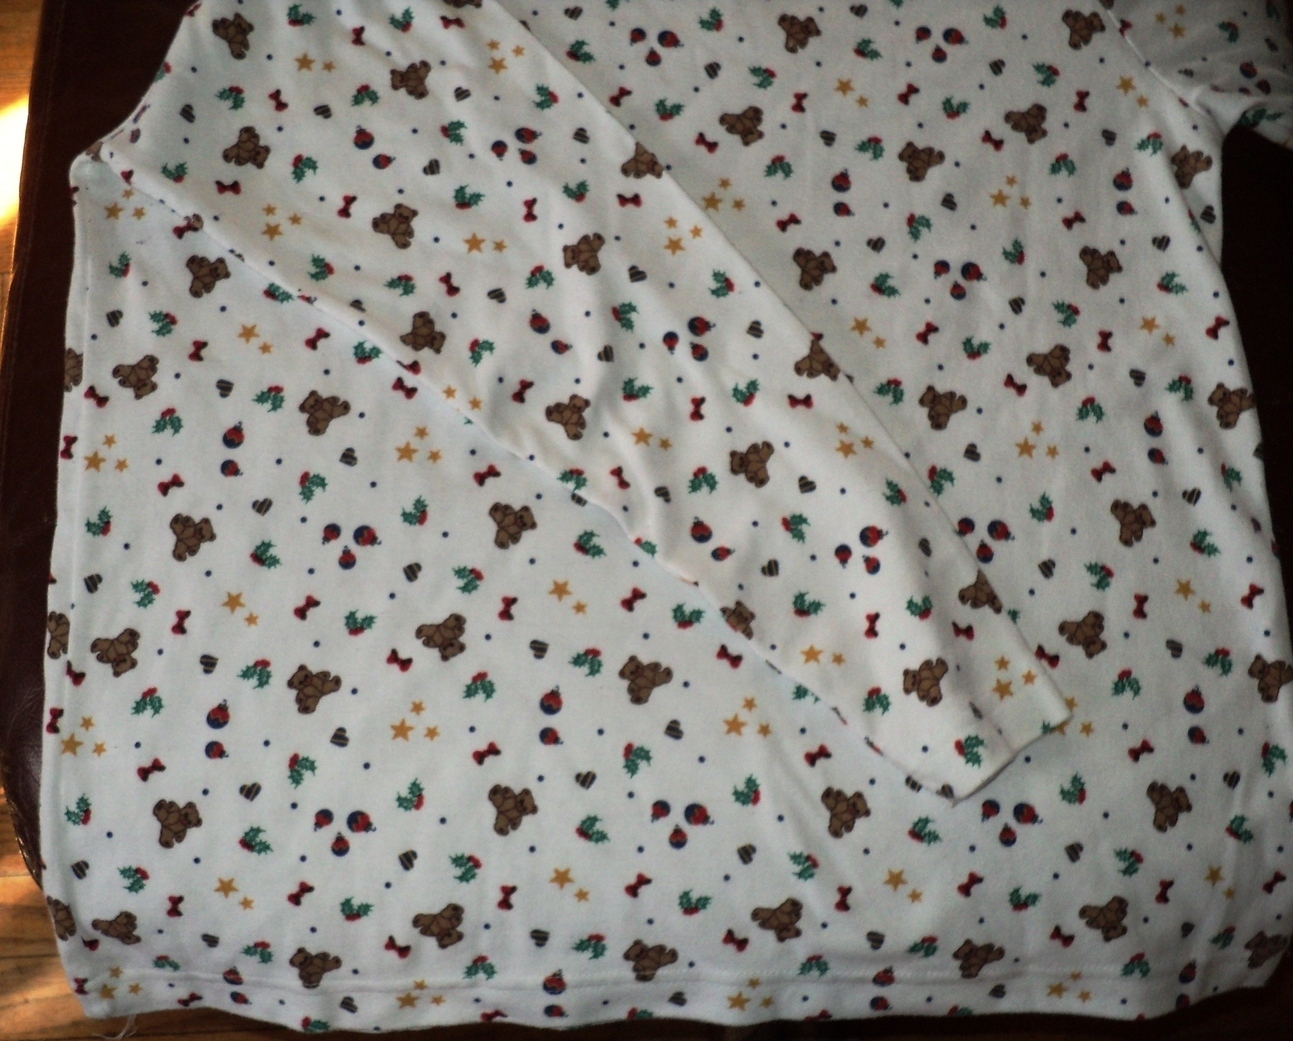 Ugly Christmas Shirt for Sweater Bears Ornament Star Size Medium 43 Chest Unisex image 5